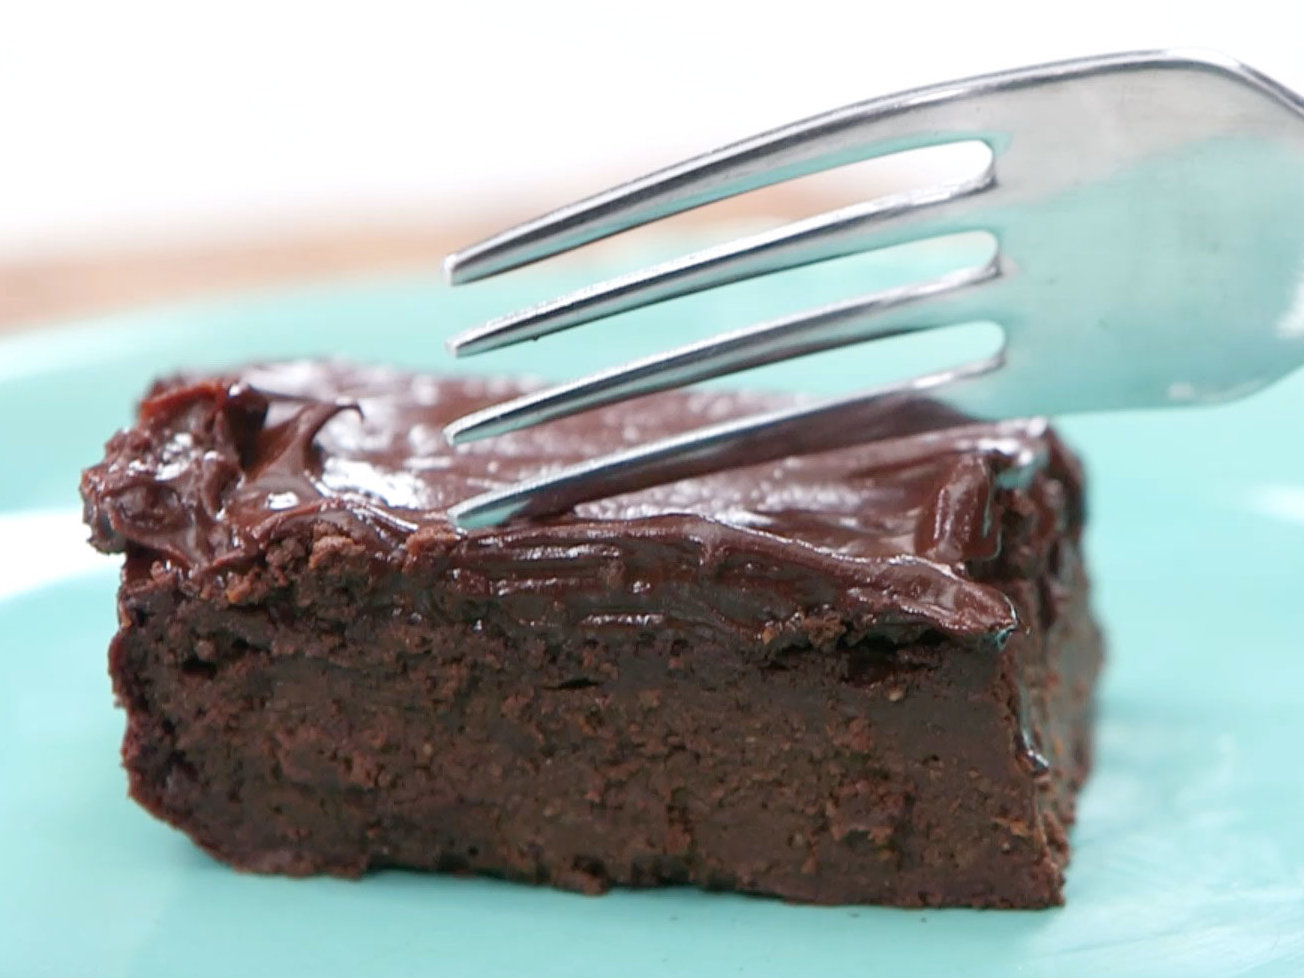 Küche Magazin Vkd How To Make Avocado Brownies With Avo Frosting Health